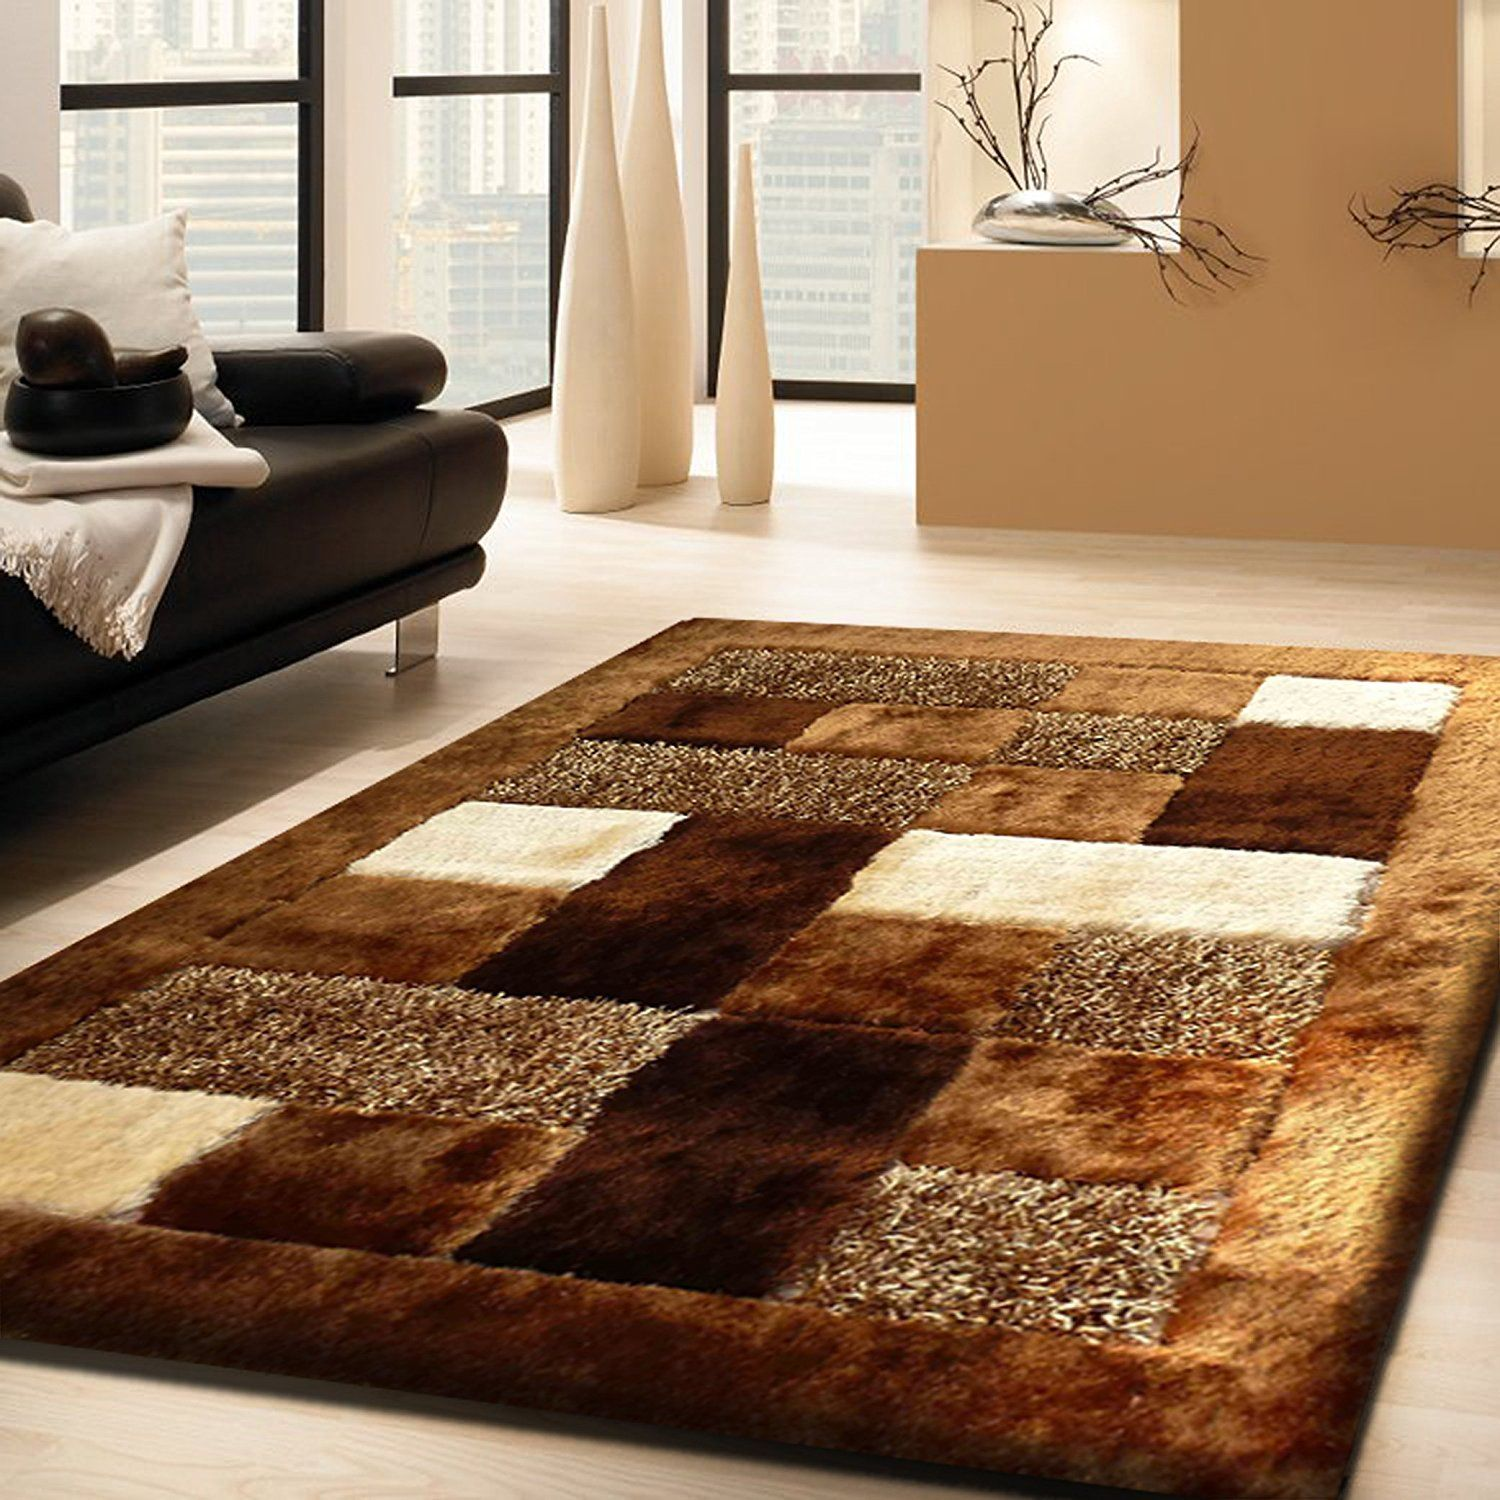 How To Find The Cheapest Area Rugs In 2020 With Images Rugs In